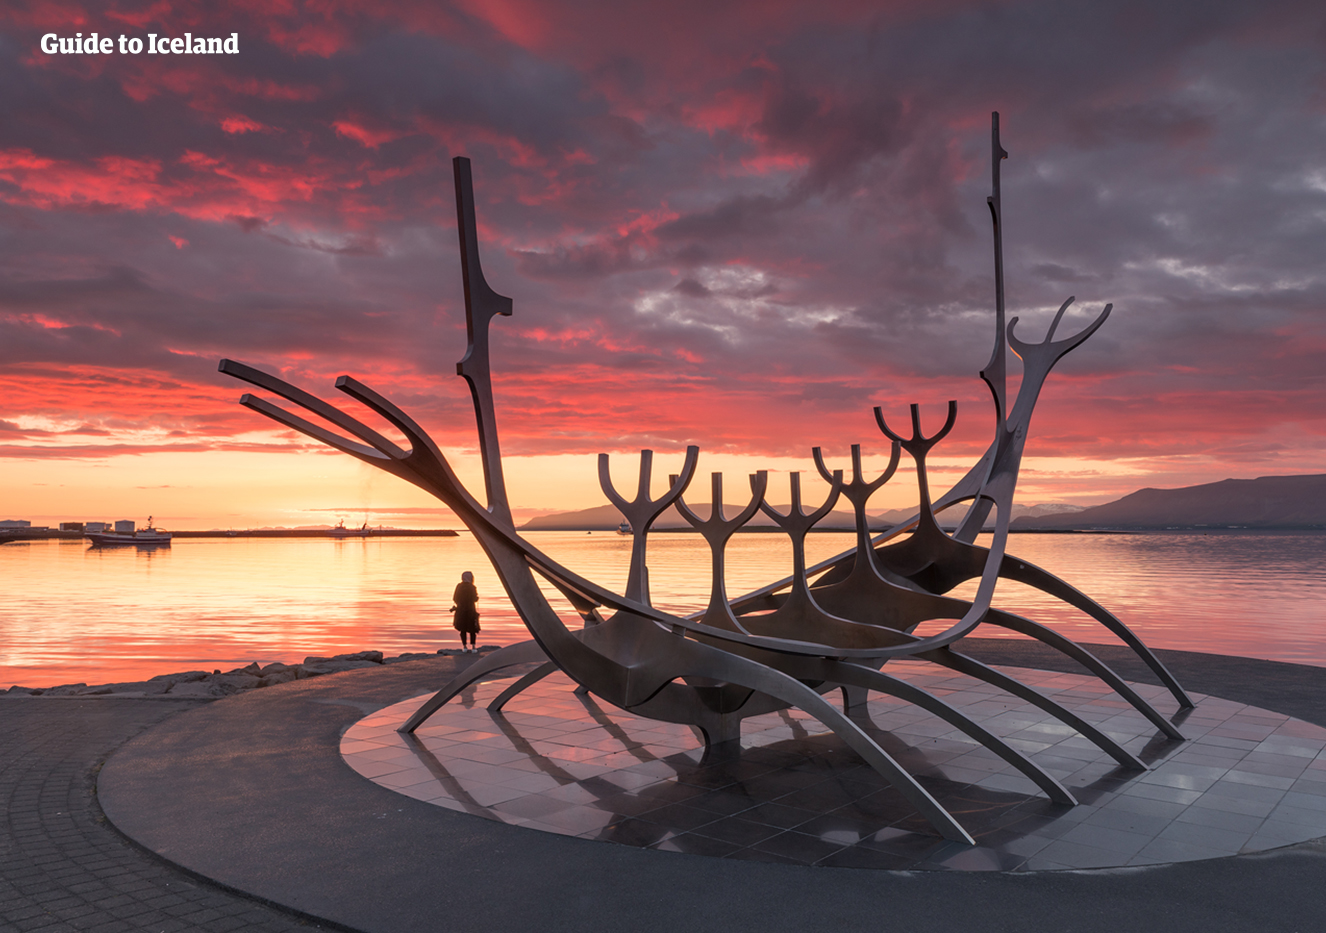 The Sun Voyager Monument pictured on the shoreline of Reykjavik at sunset in summer.